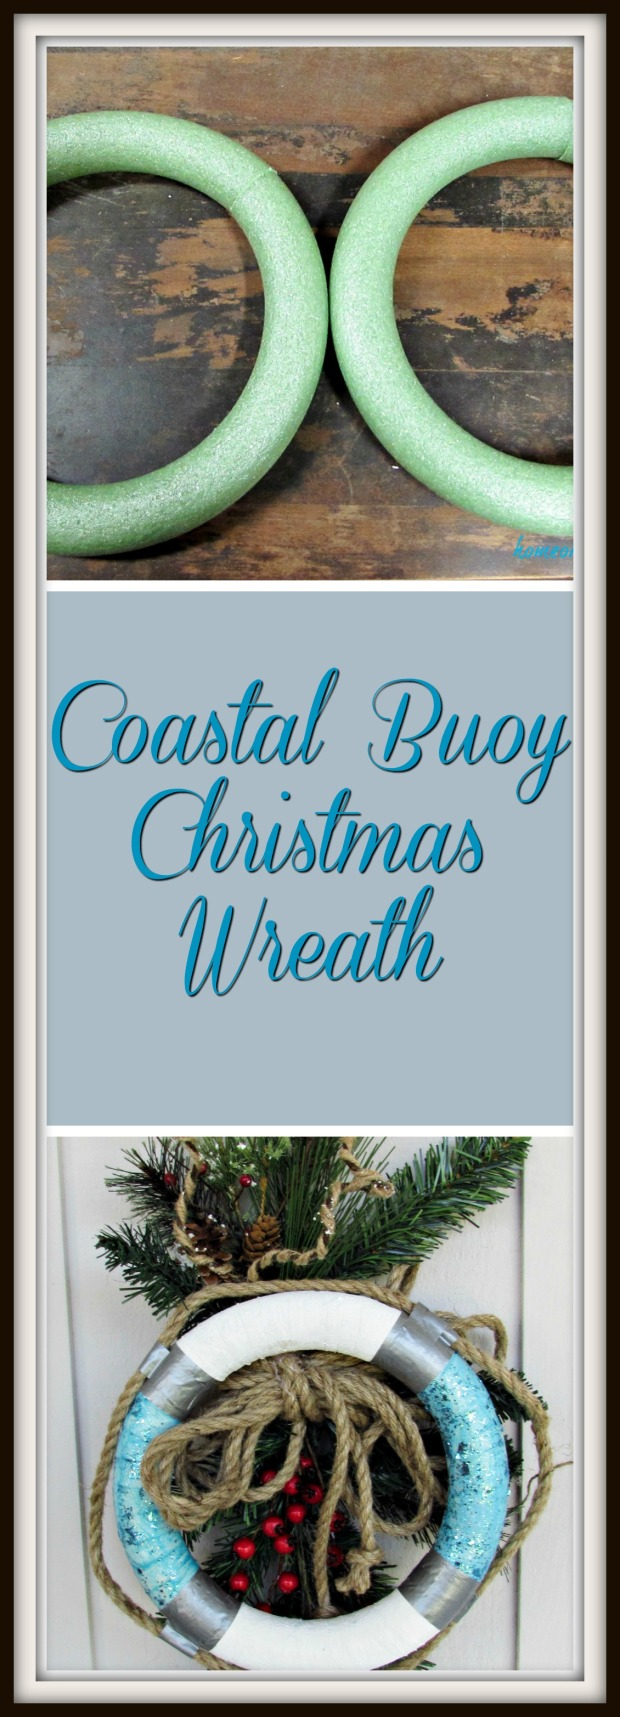 Coastal buoy christmas wreath title